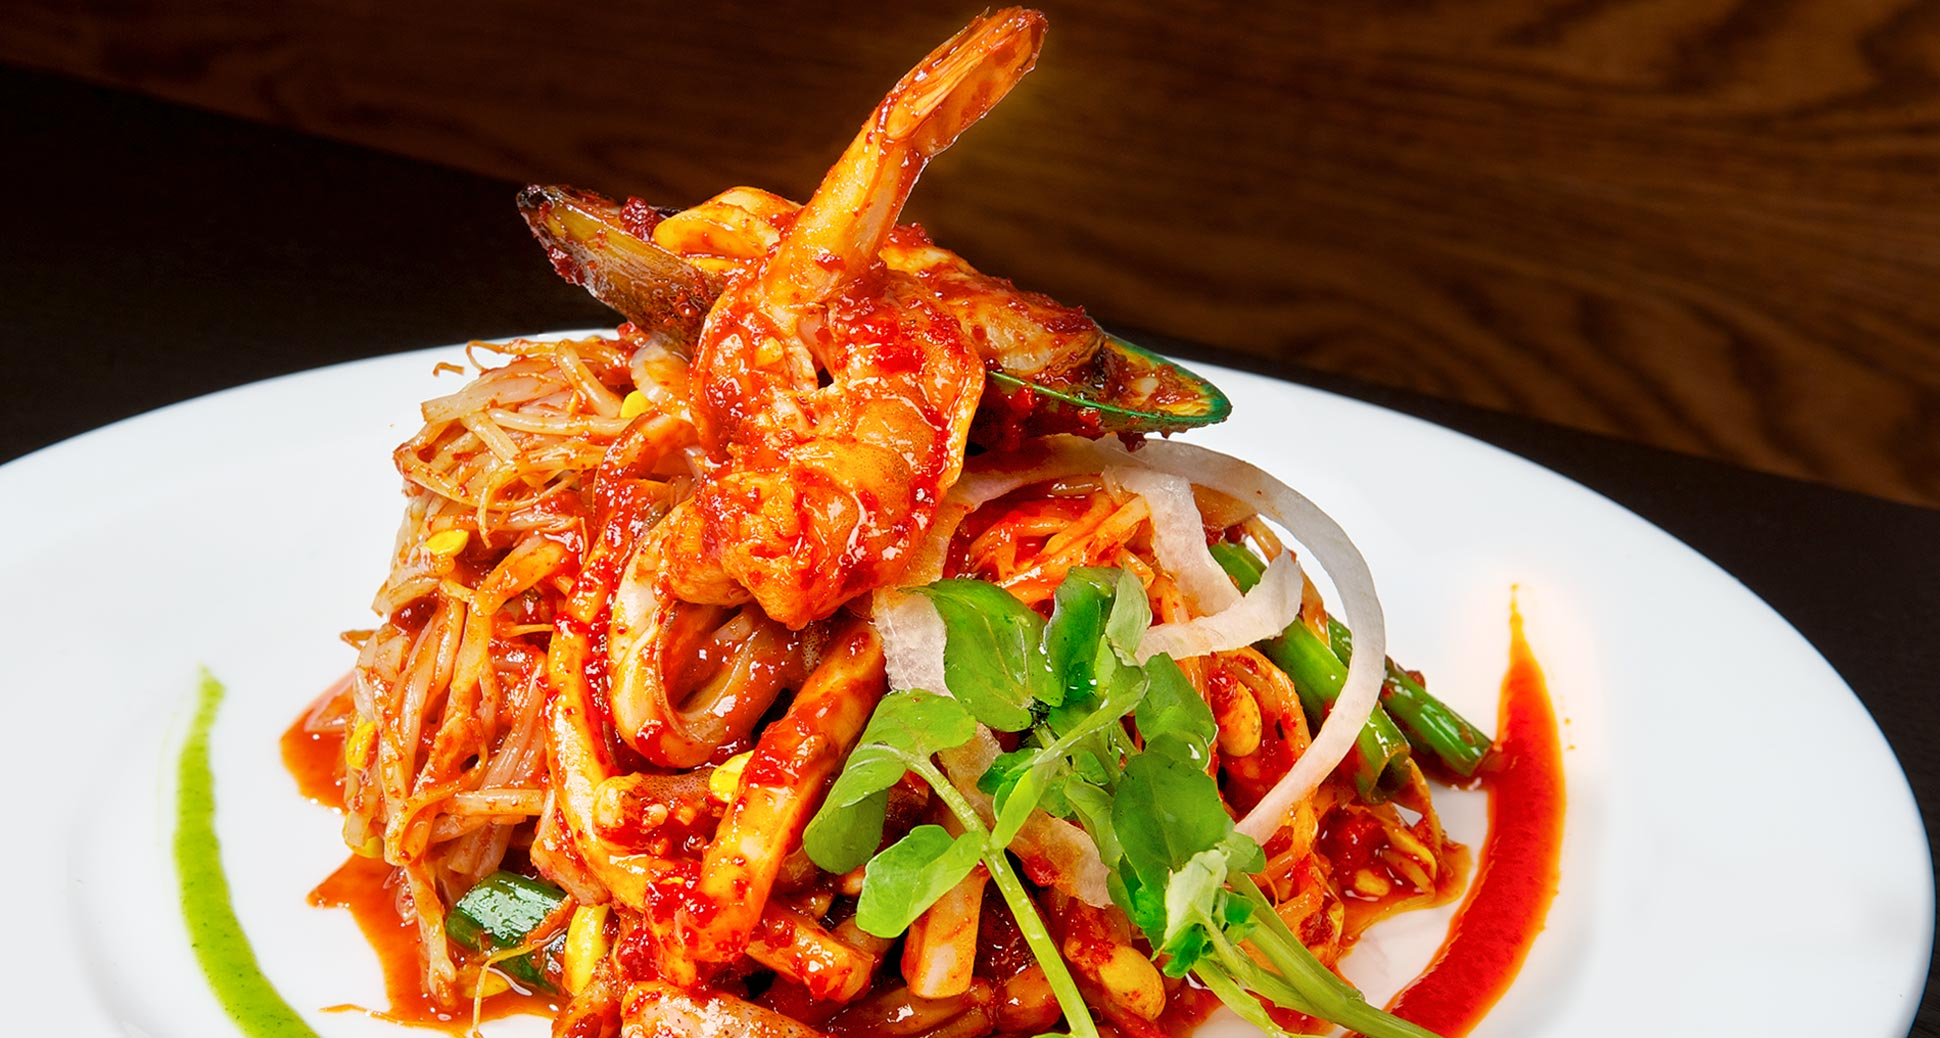 House special spicy seafood: tasty way to combat the summer heat